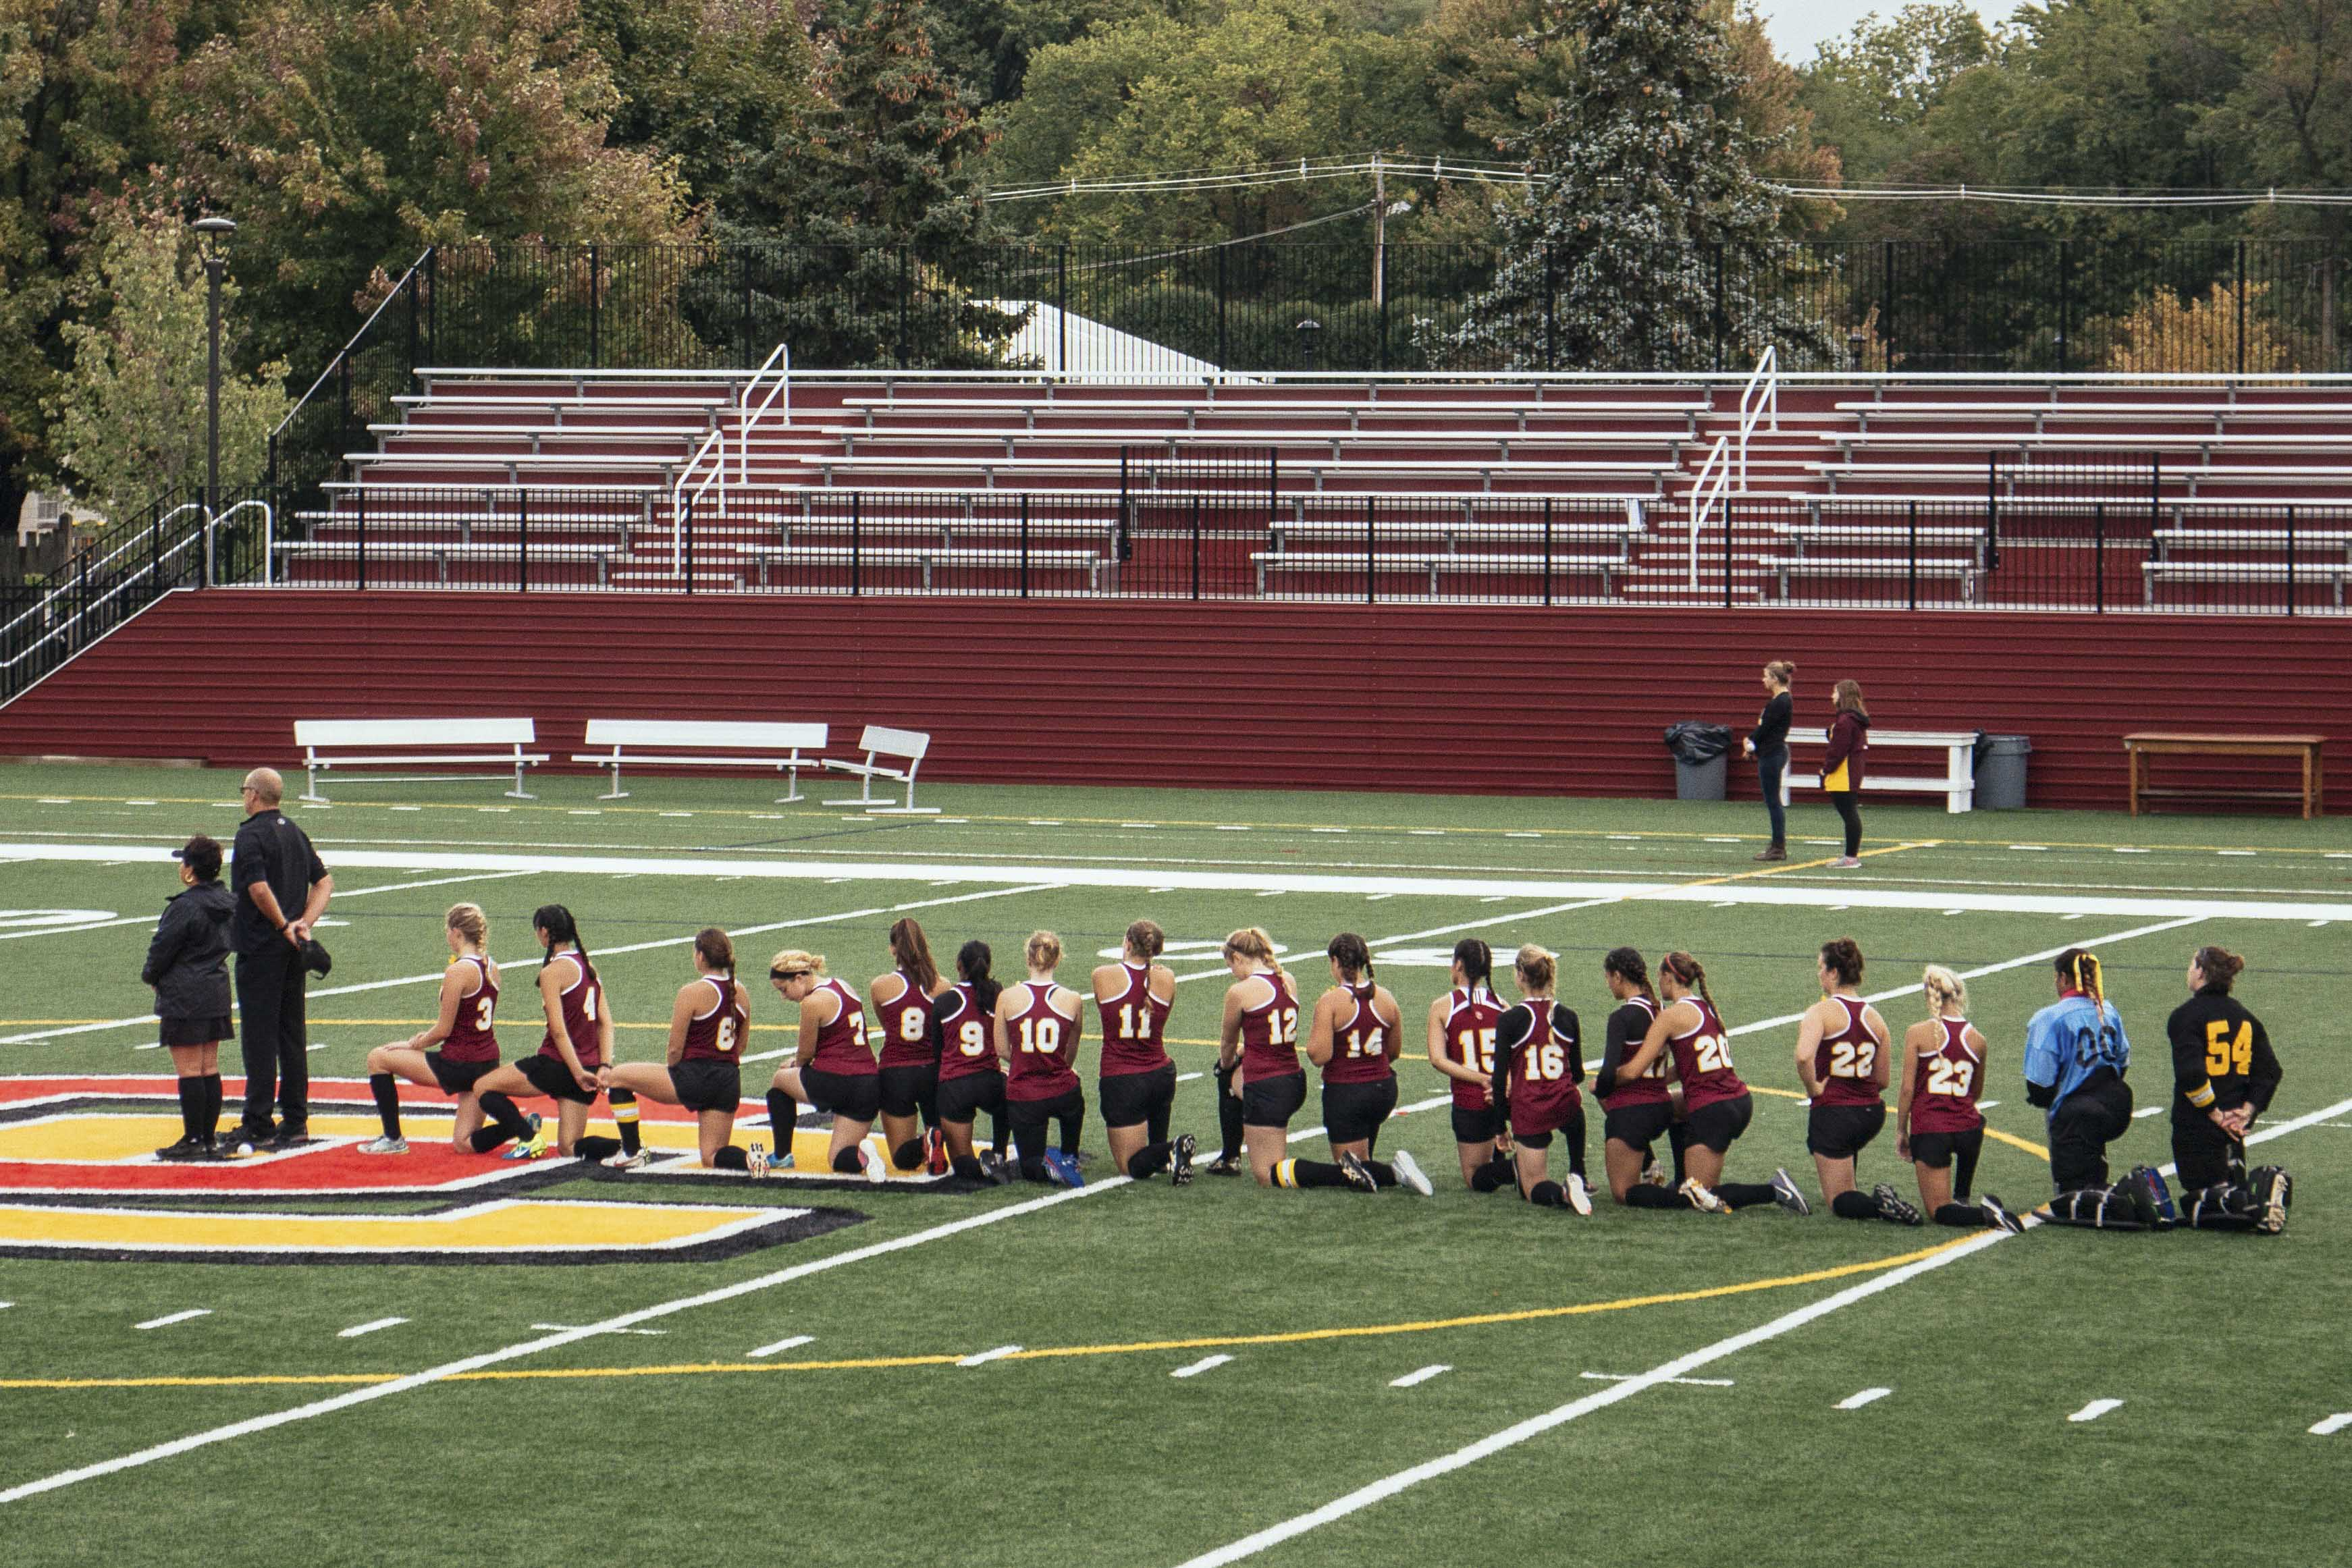 The Yeowomen kneel during the national anthem before facing off against NCAC foe Denison University last Thursday.